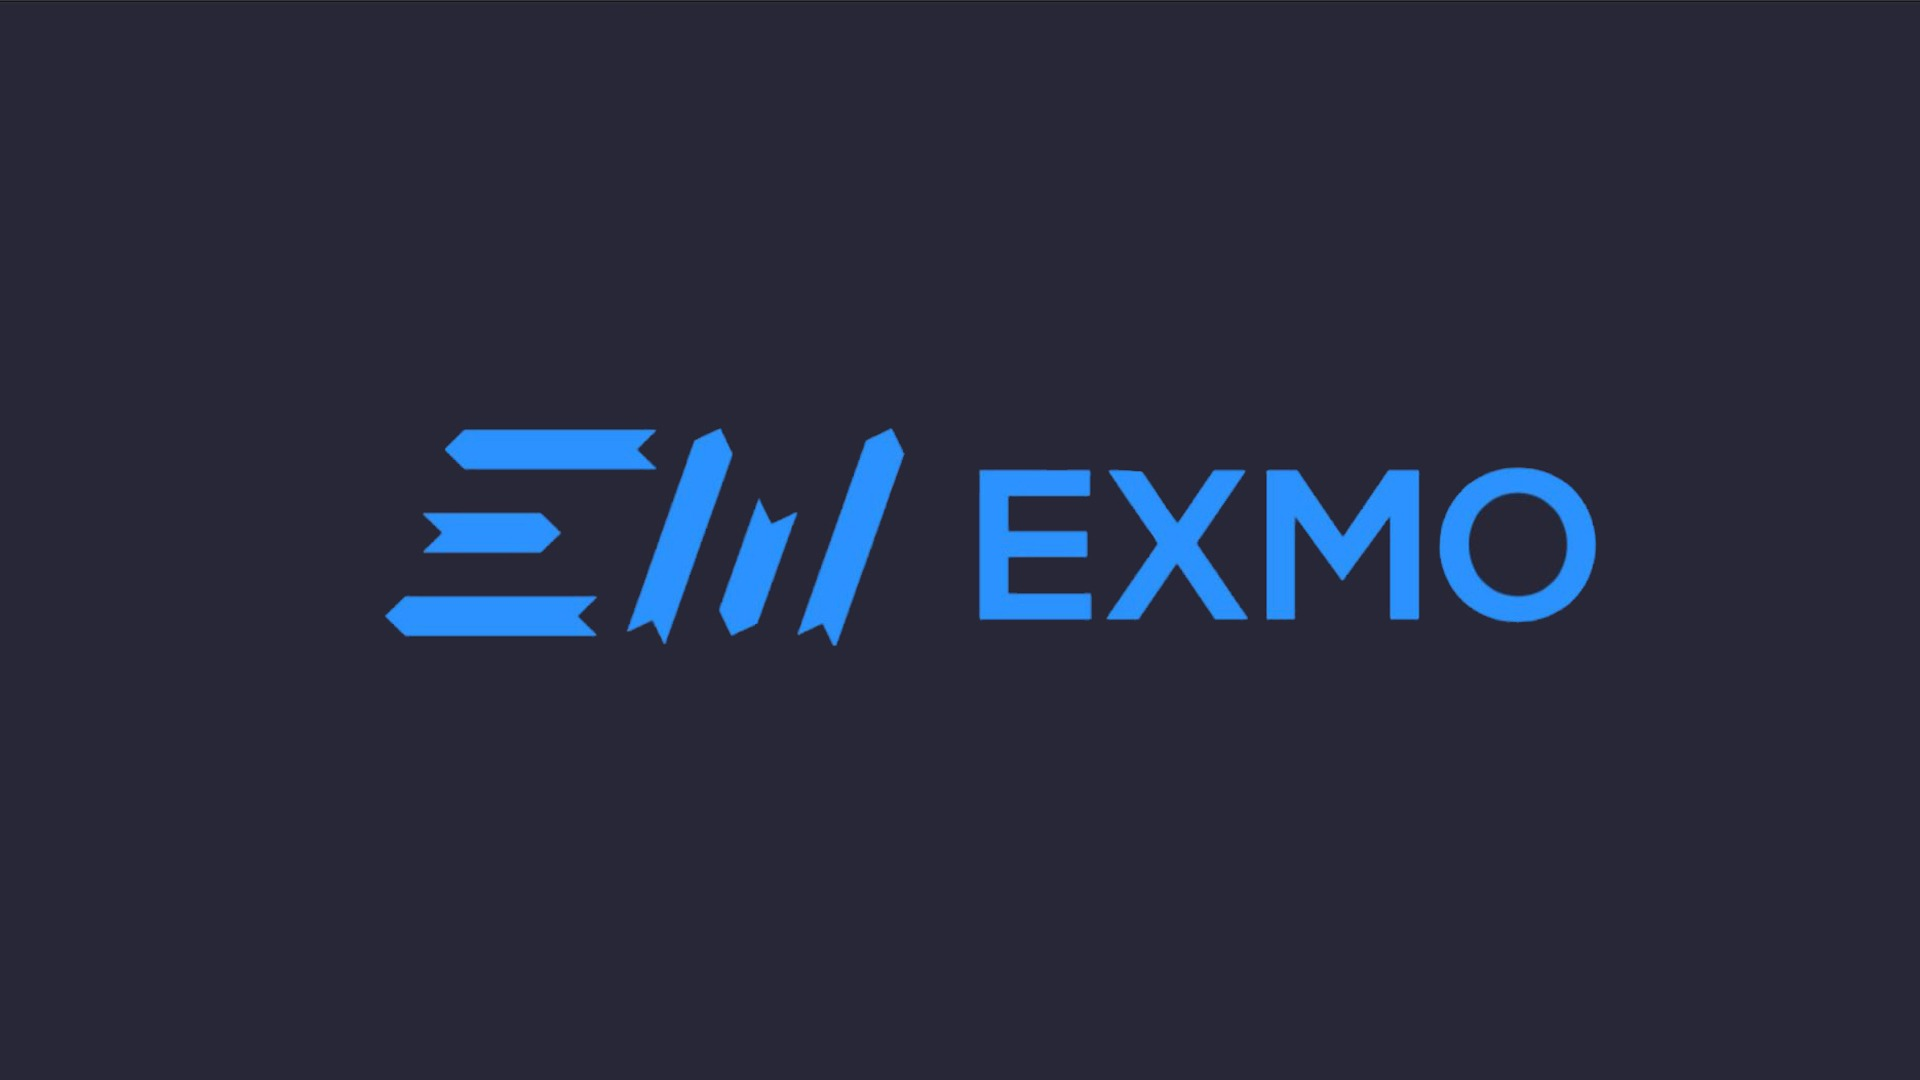 EXMO is under attack!